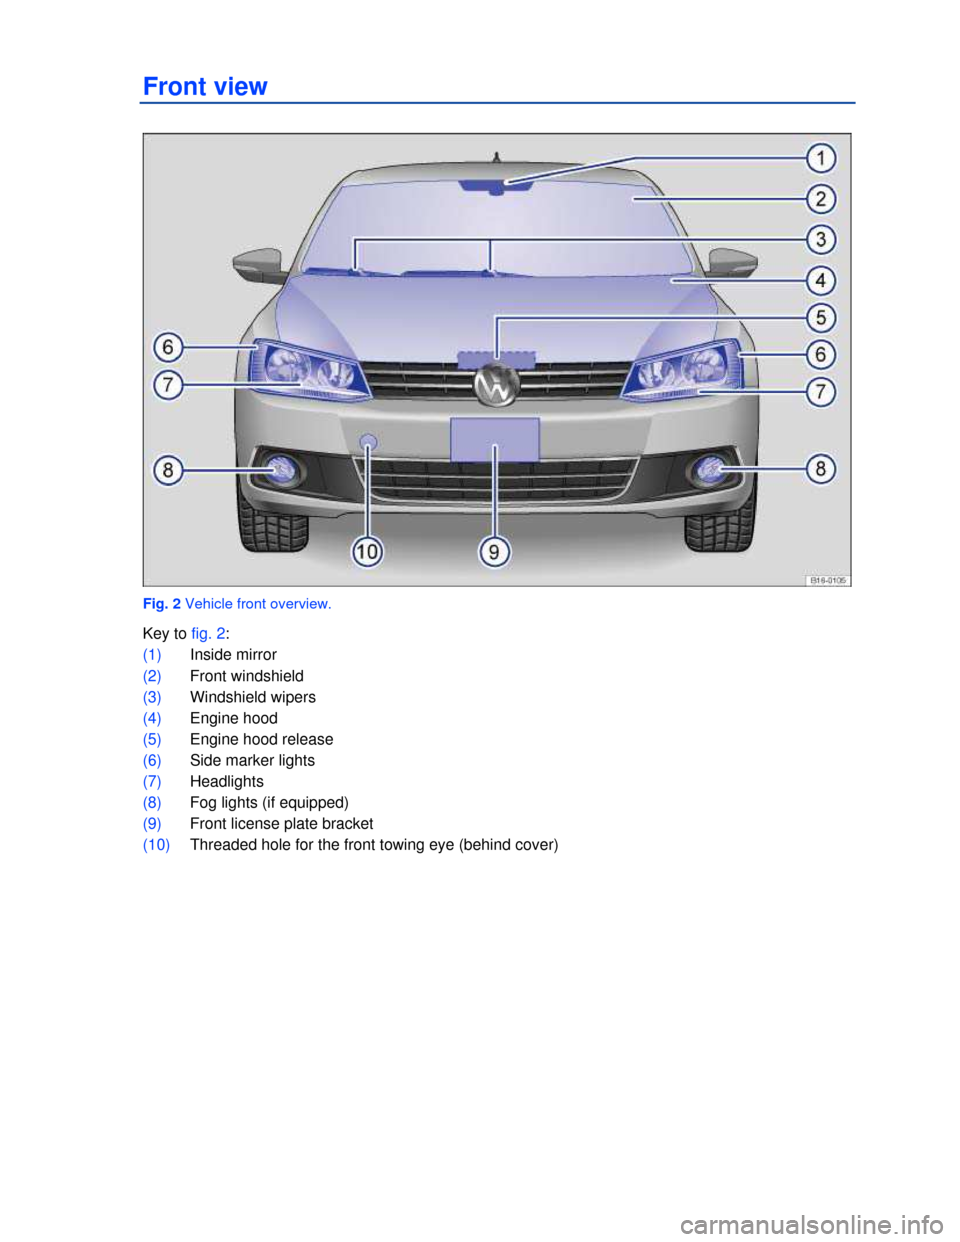 VOLKSWAGEN JETTA 2013 1B / 6.G Owners Manual, Page 2